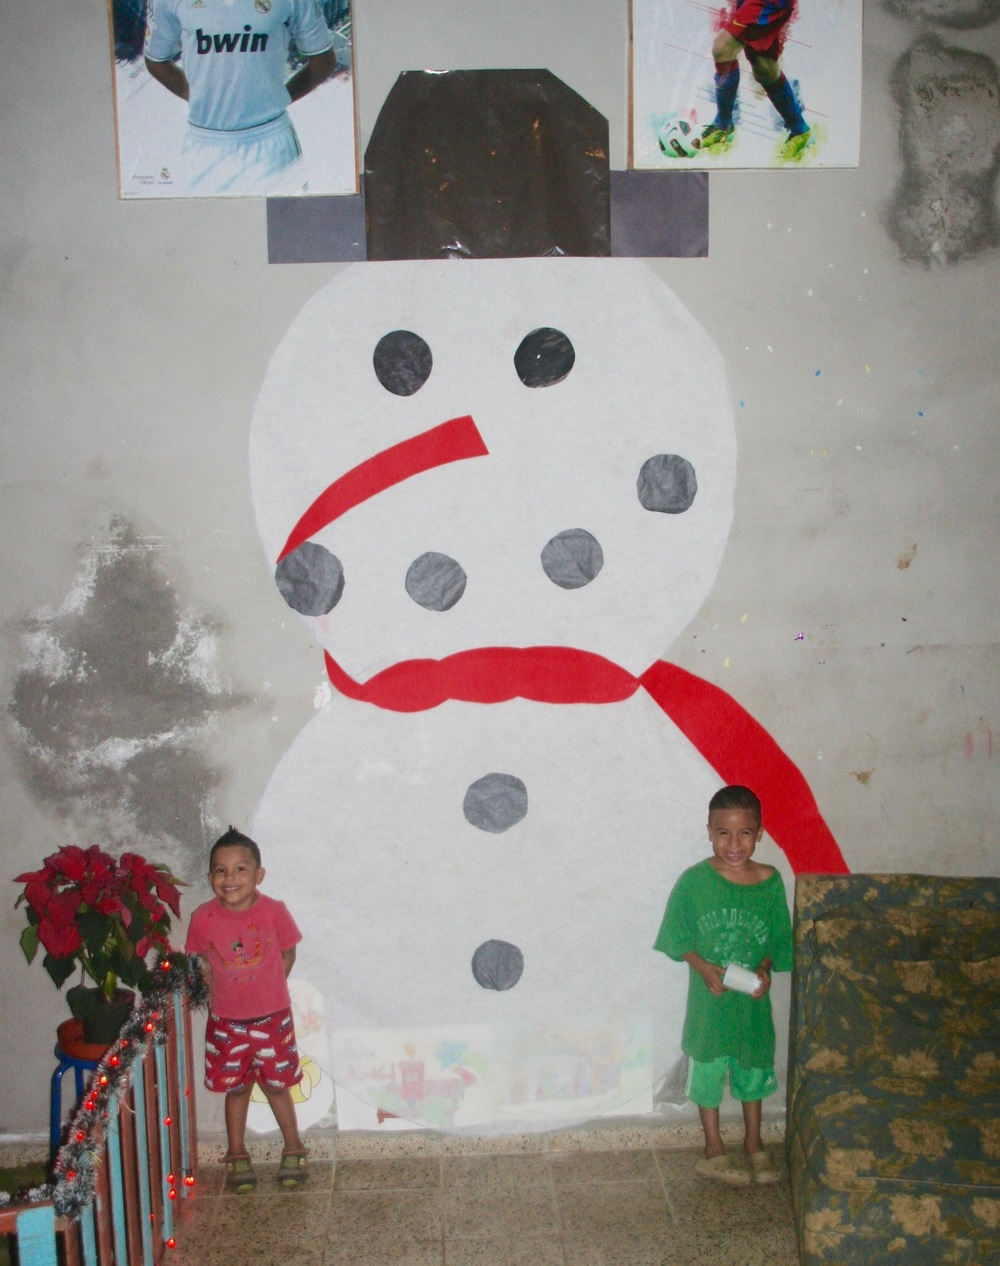 Edwin and friend posing in front of a giant snowman they helped make on the wall of their dorm during Christmas.